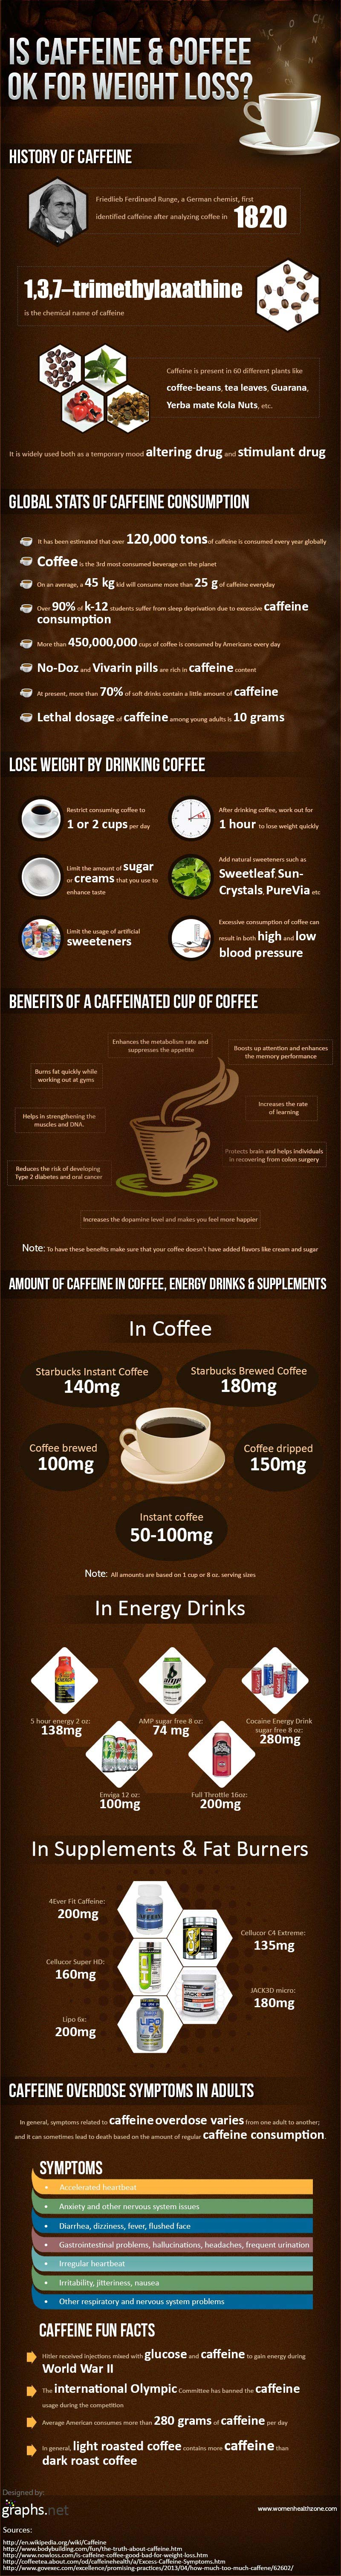 Caffeine on Weight Loss-Infographic